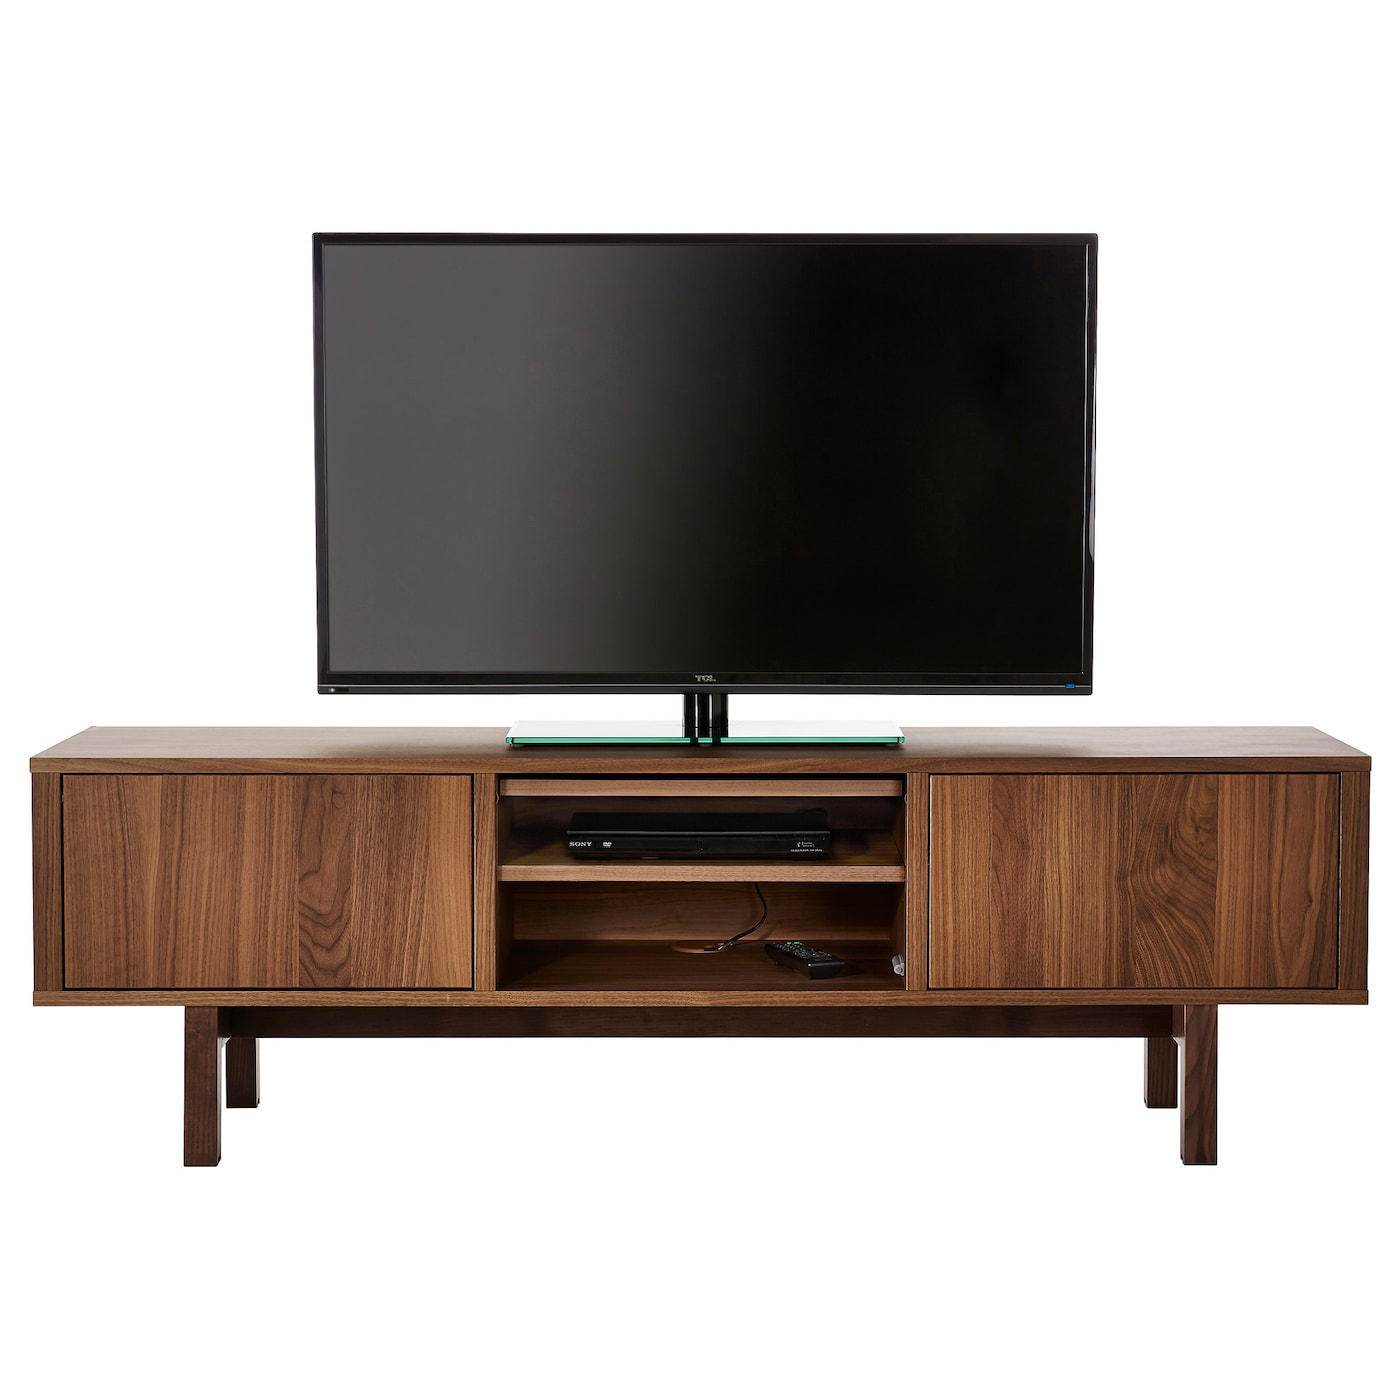 Stockholm tv bench walnut veneer 160x40 cm ikea for Ikea mobile tv